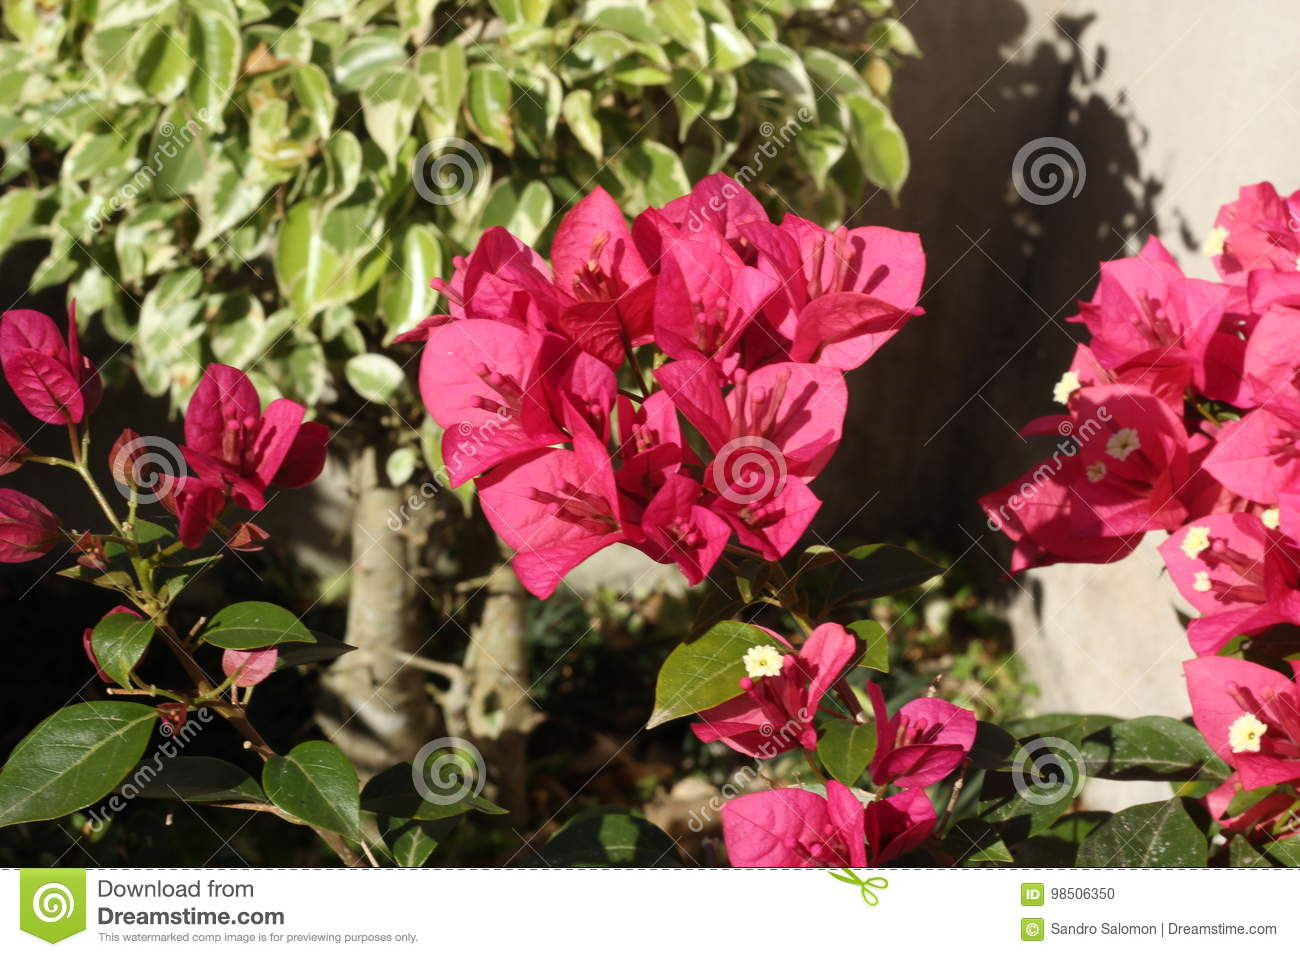 Blooming Bougainvillea Flowers Background 6x9ft European Style Polyester Photography Backdrop Romantic Narrow Street Green Ivy Stone Steps Elegant Holiday Lover Baby Studio Photo Prop Decor